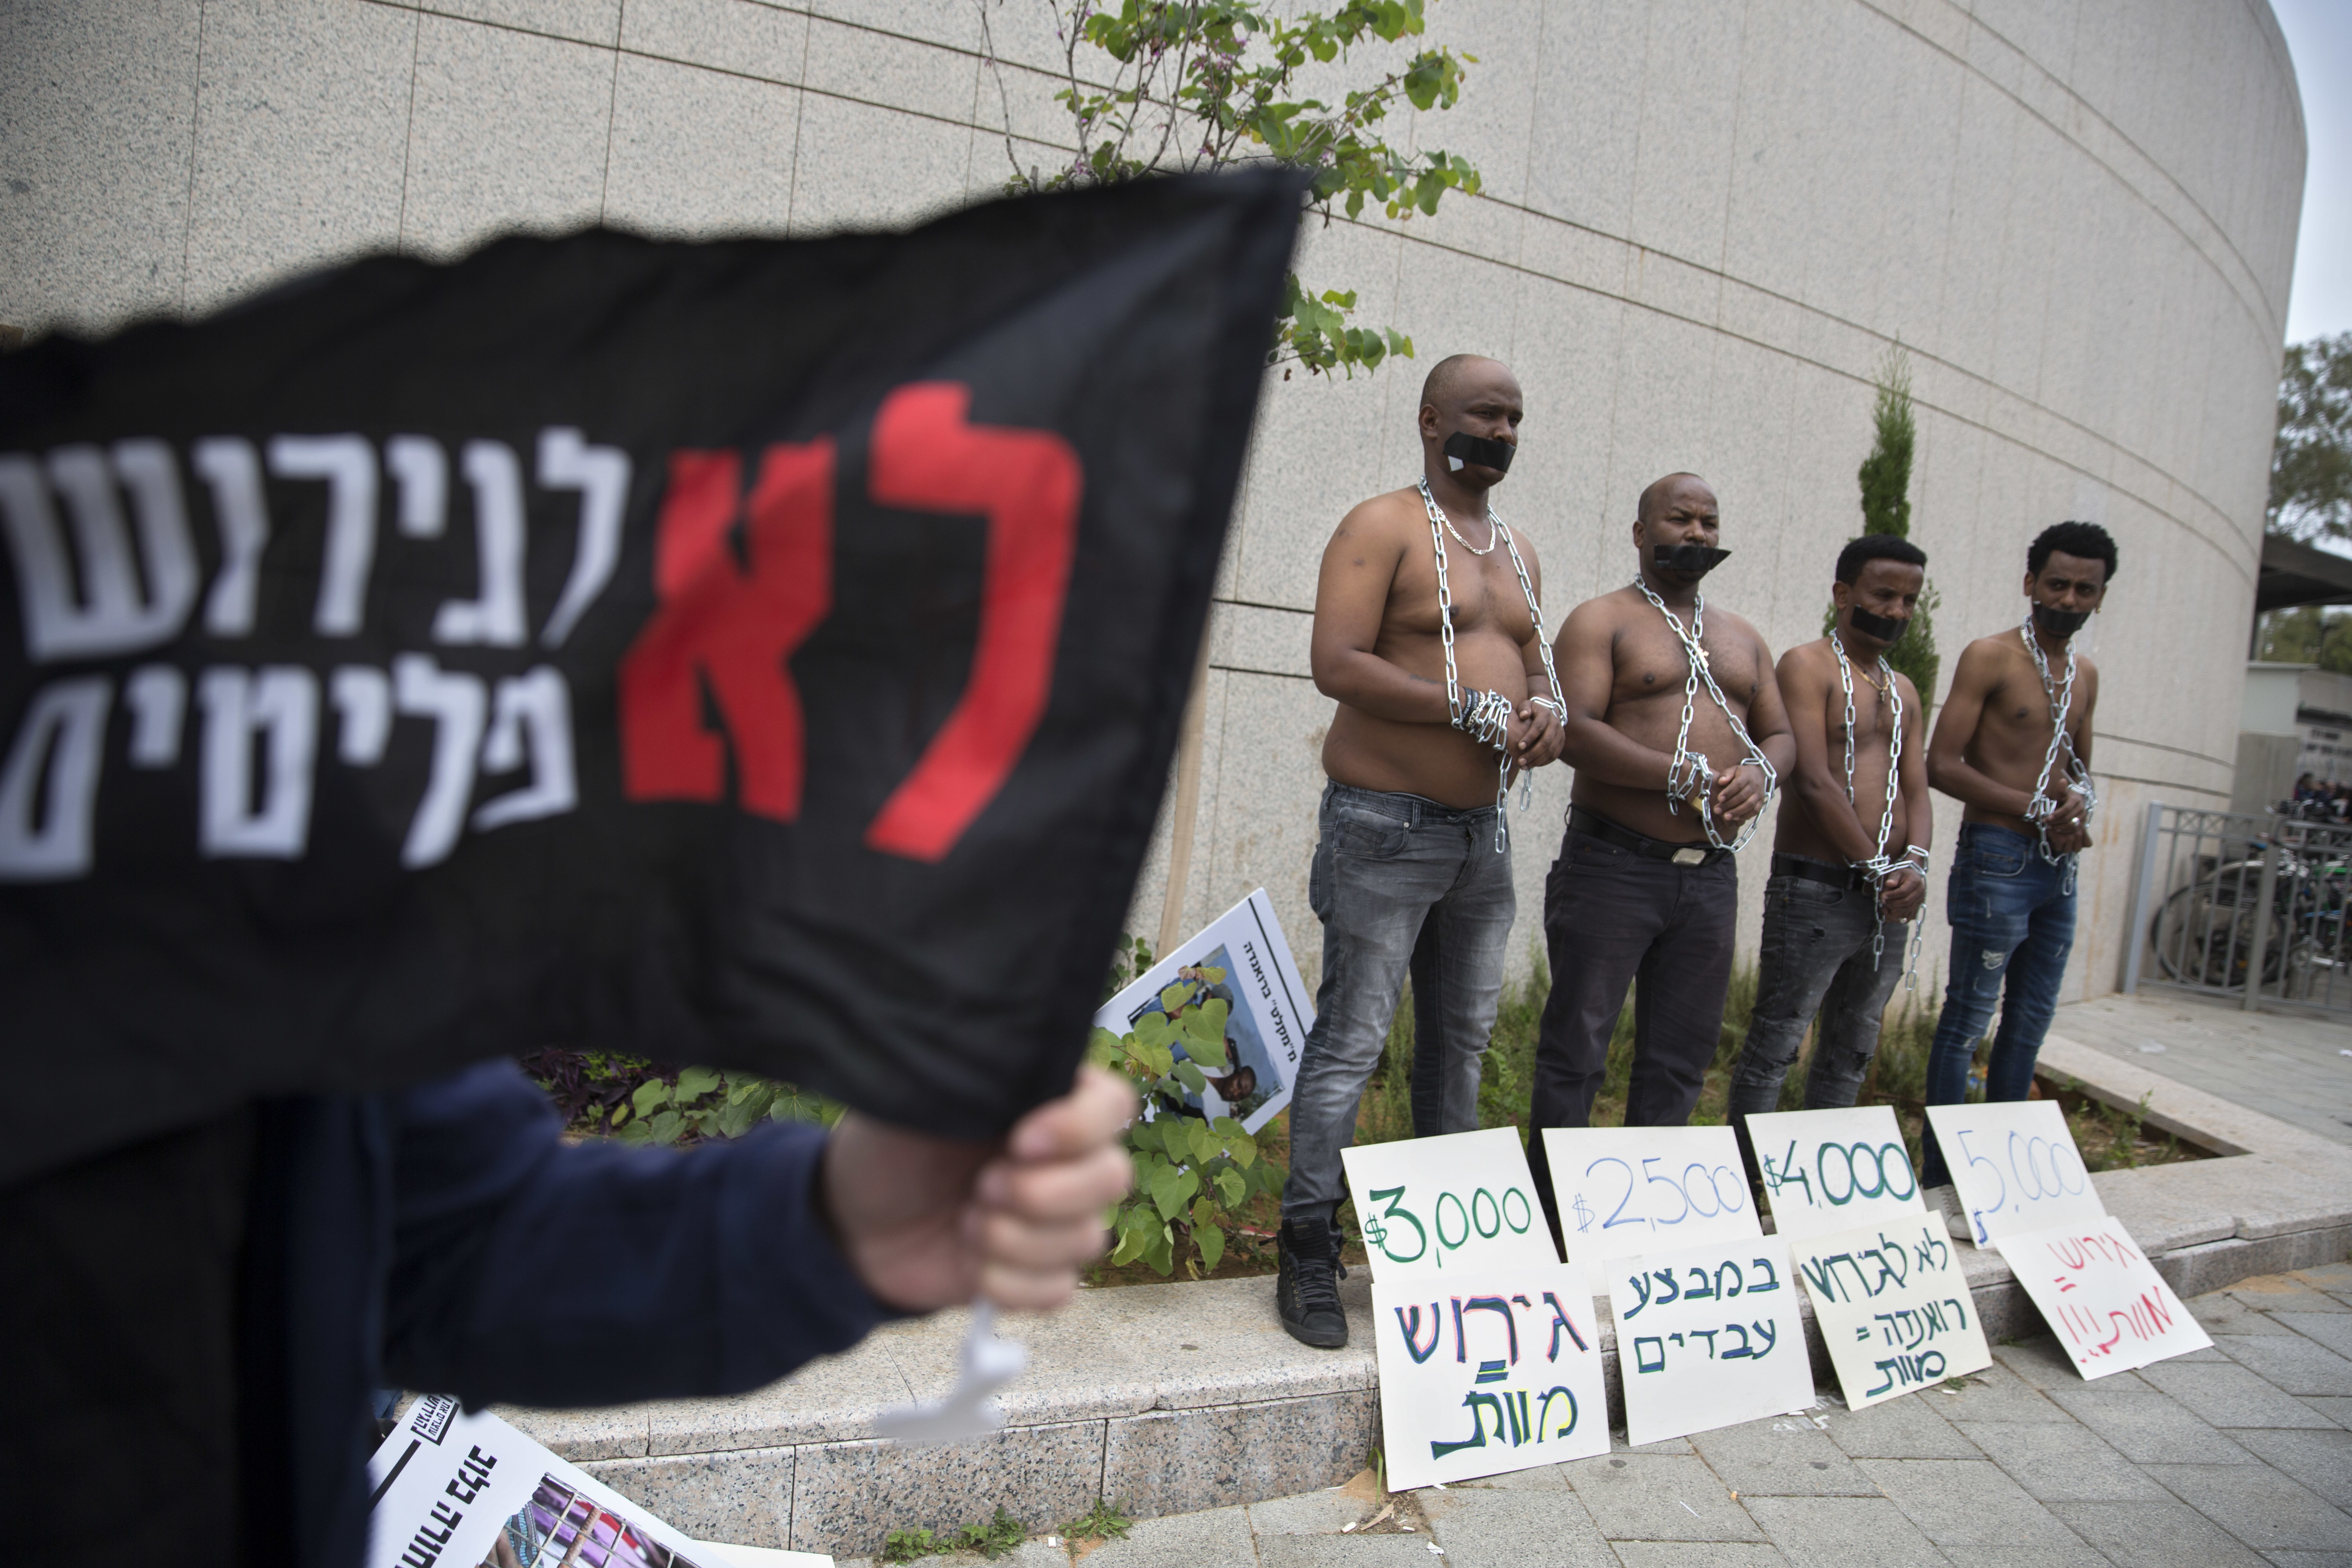 African migrants wear chains to represent slavery during a demonstration in Tel Aviv, Israel, April 3, 2018.